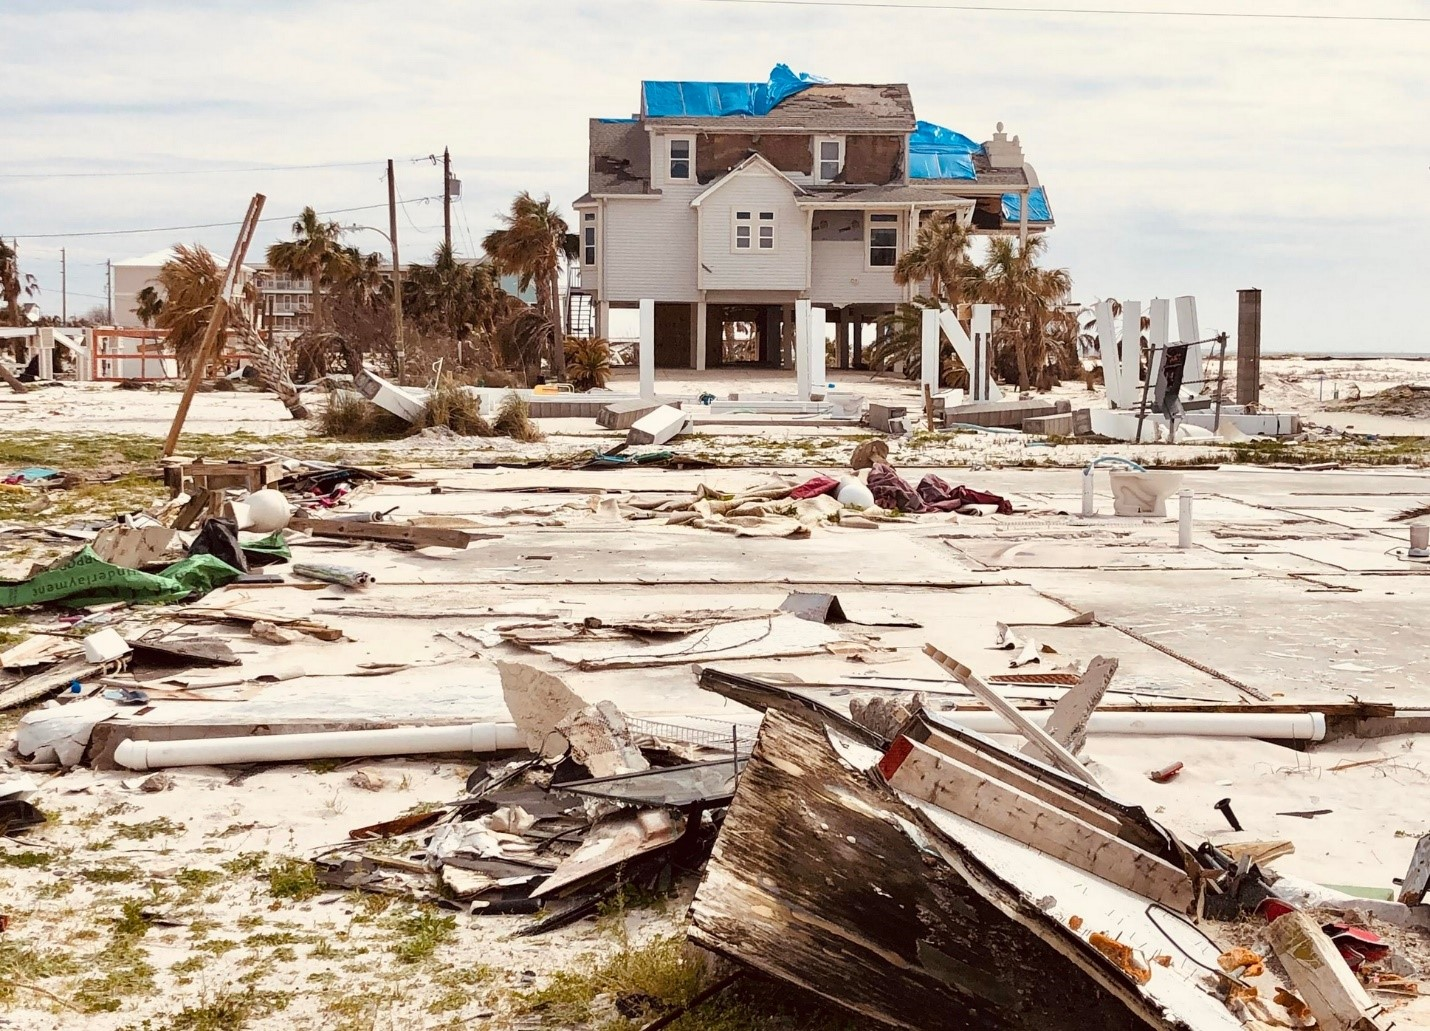 Wrecked home from hurricane